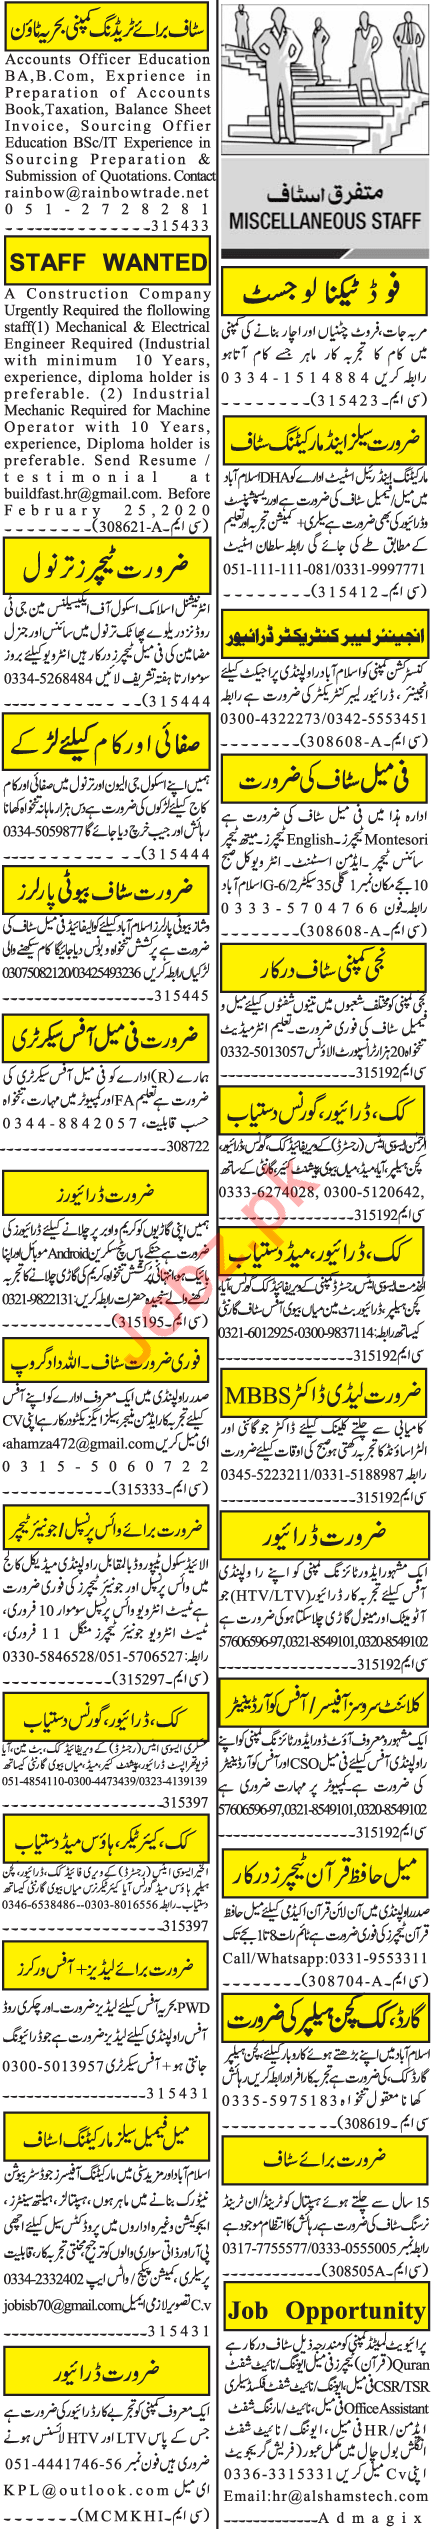 Jang Sunday Rawalpindi Classified Ads 9 Feb 2020